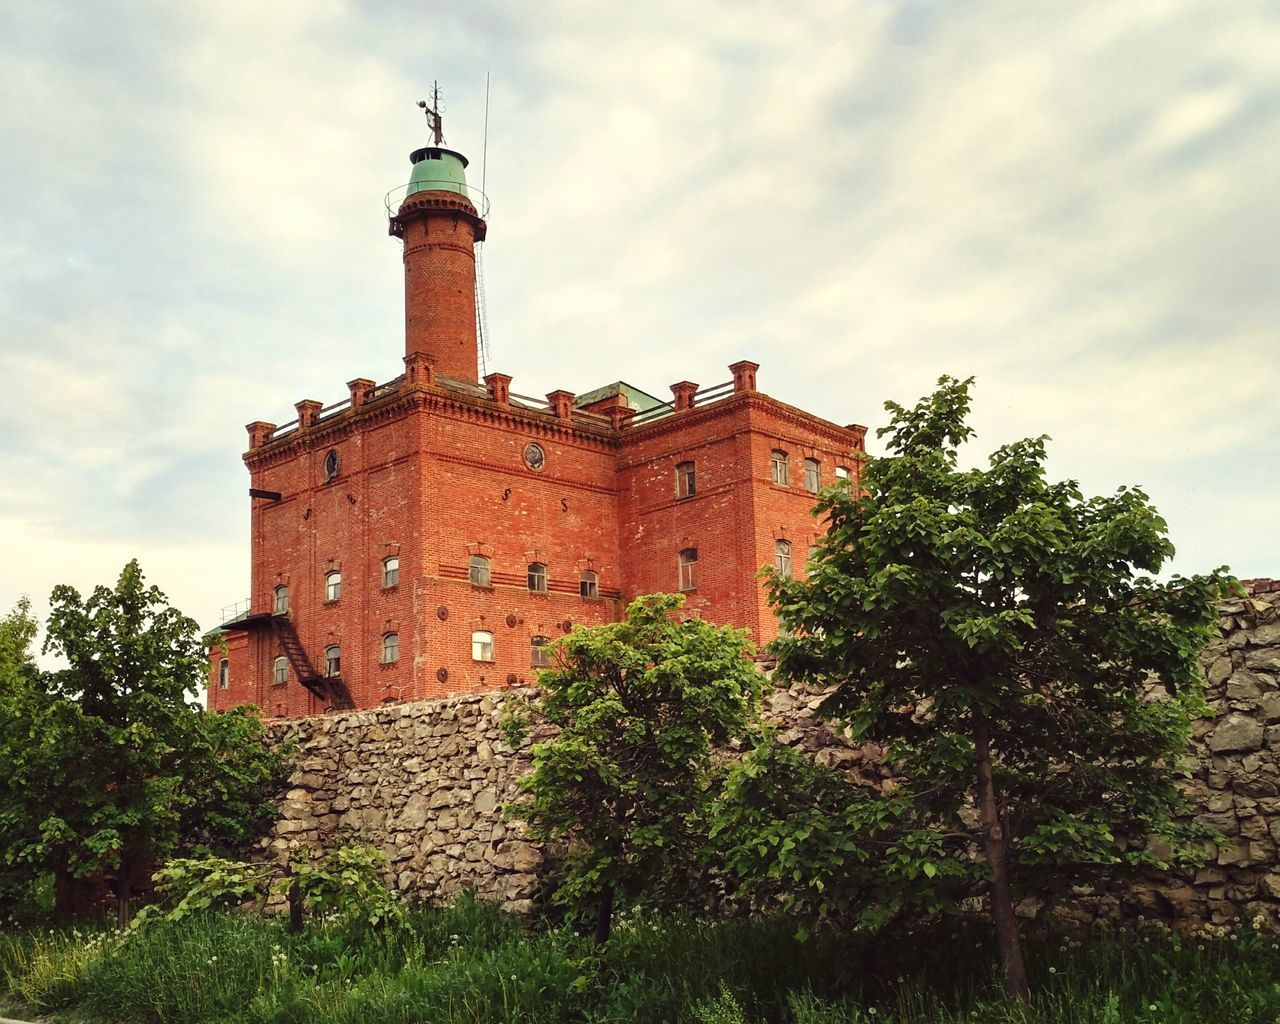 Architecture Building Exterior Low Angle View Cloud - Sky Sky Tree Outdoors Built Structure No People Day Architecture City Mobile Photography Building Russia Ruins Abandoned Buildings Red 1907 Vintage Retro Russian Imperia Red Nature The Architect - 2017 EyeEm Awards